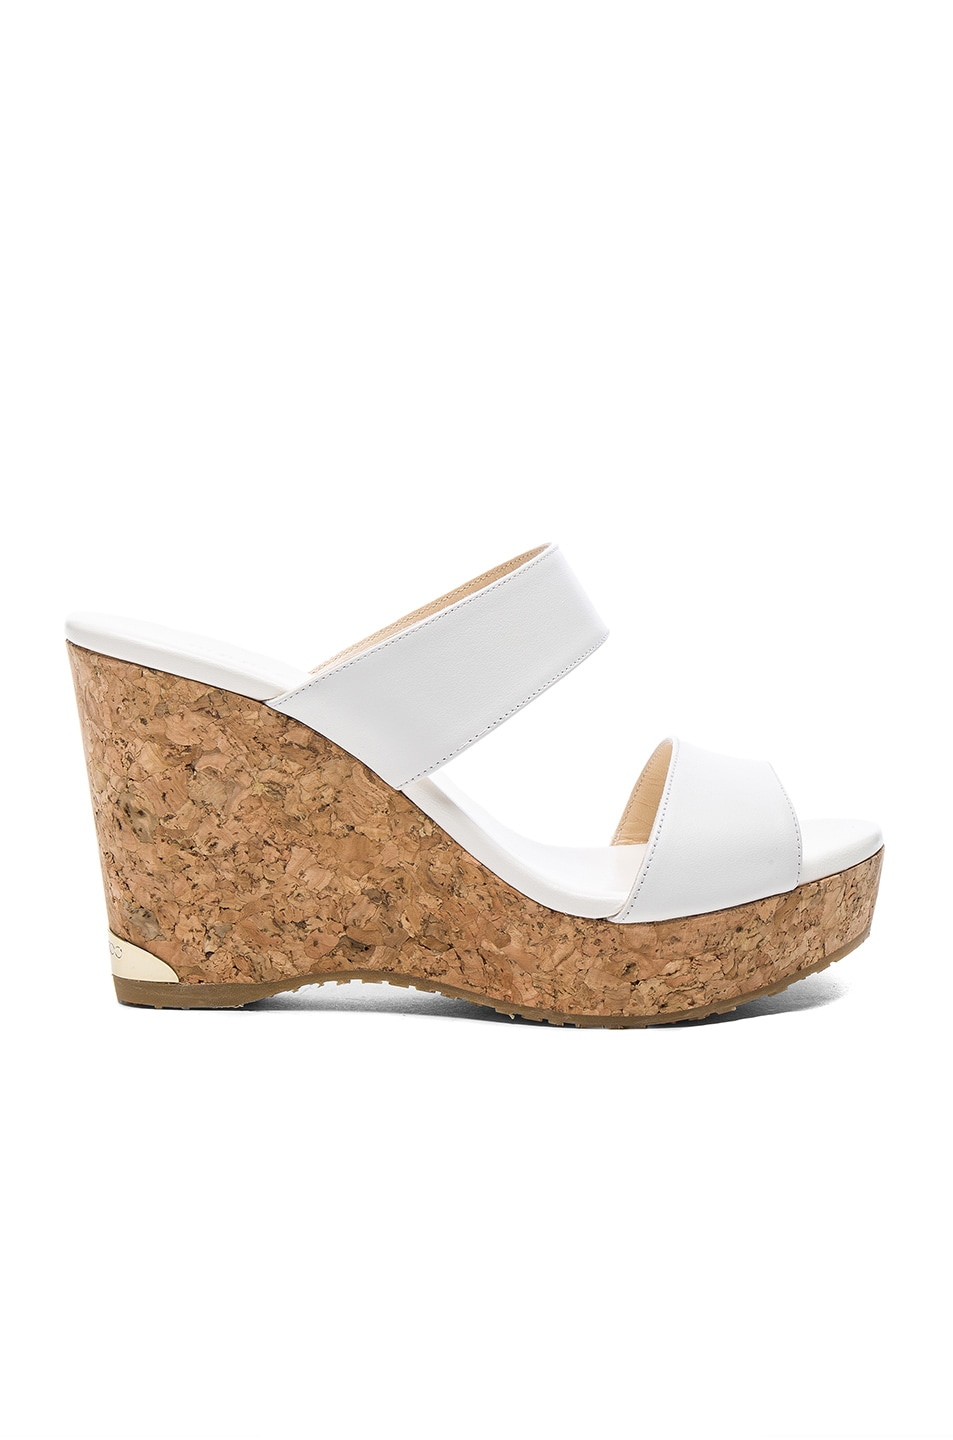 Image 1 of Jimmy Choo Parker 100 Leather Wedge in White